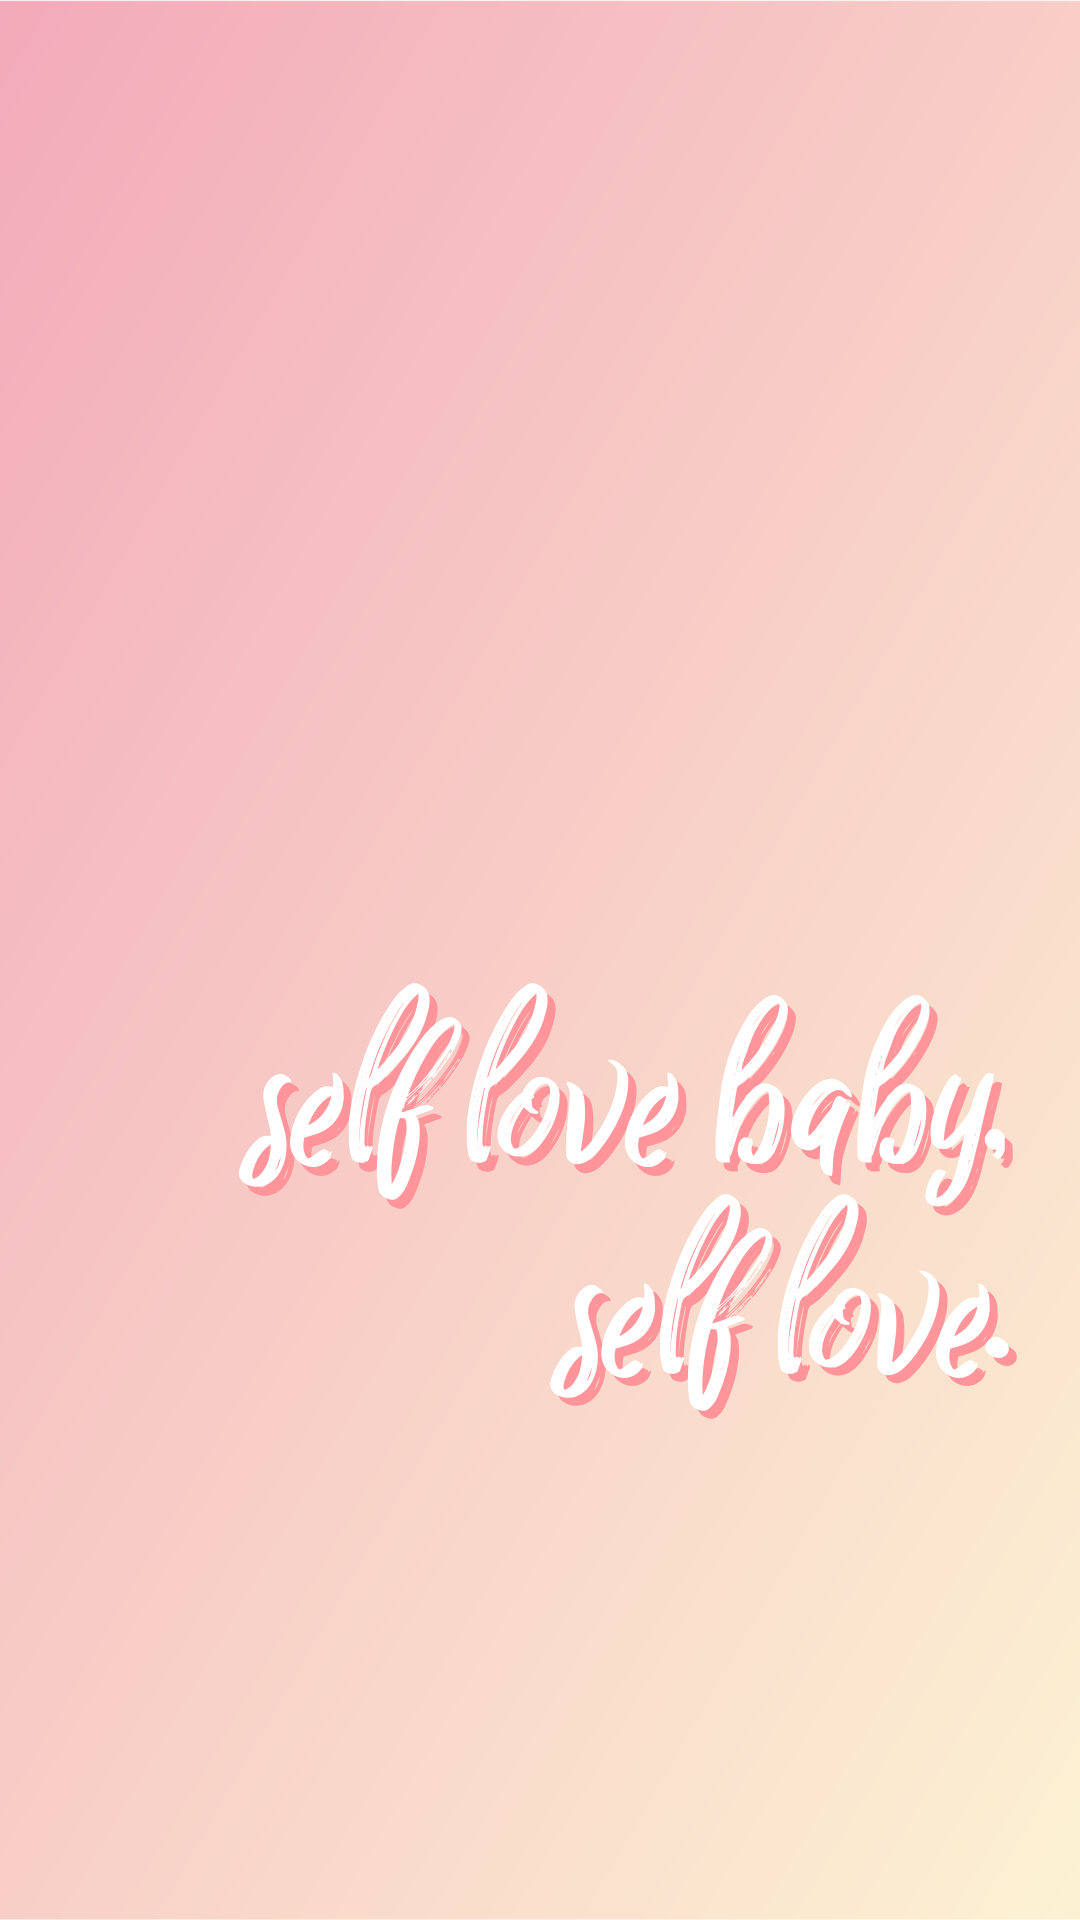 self love story.png